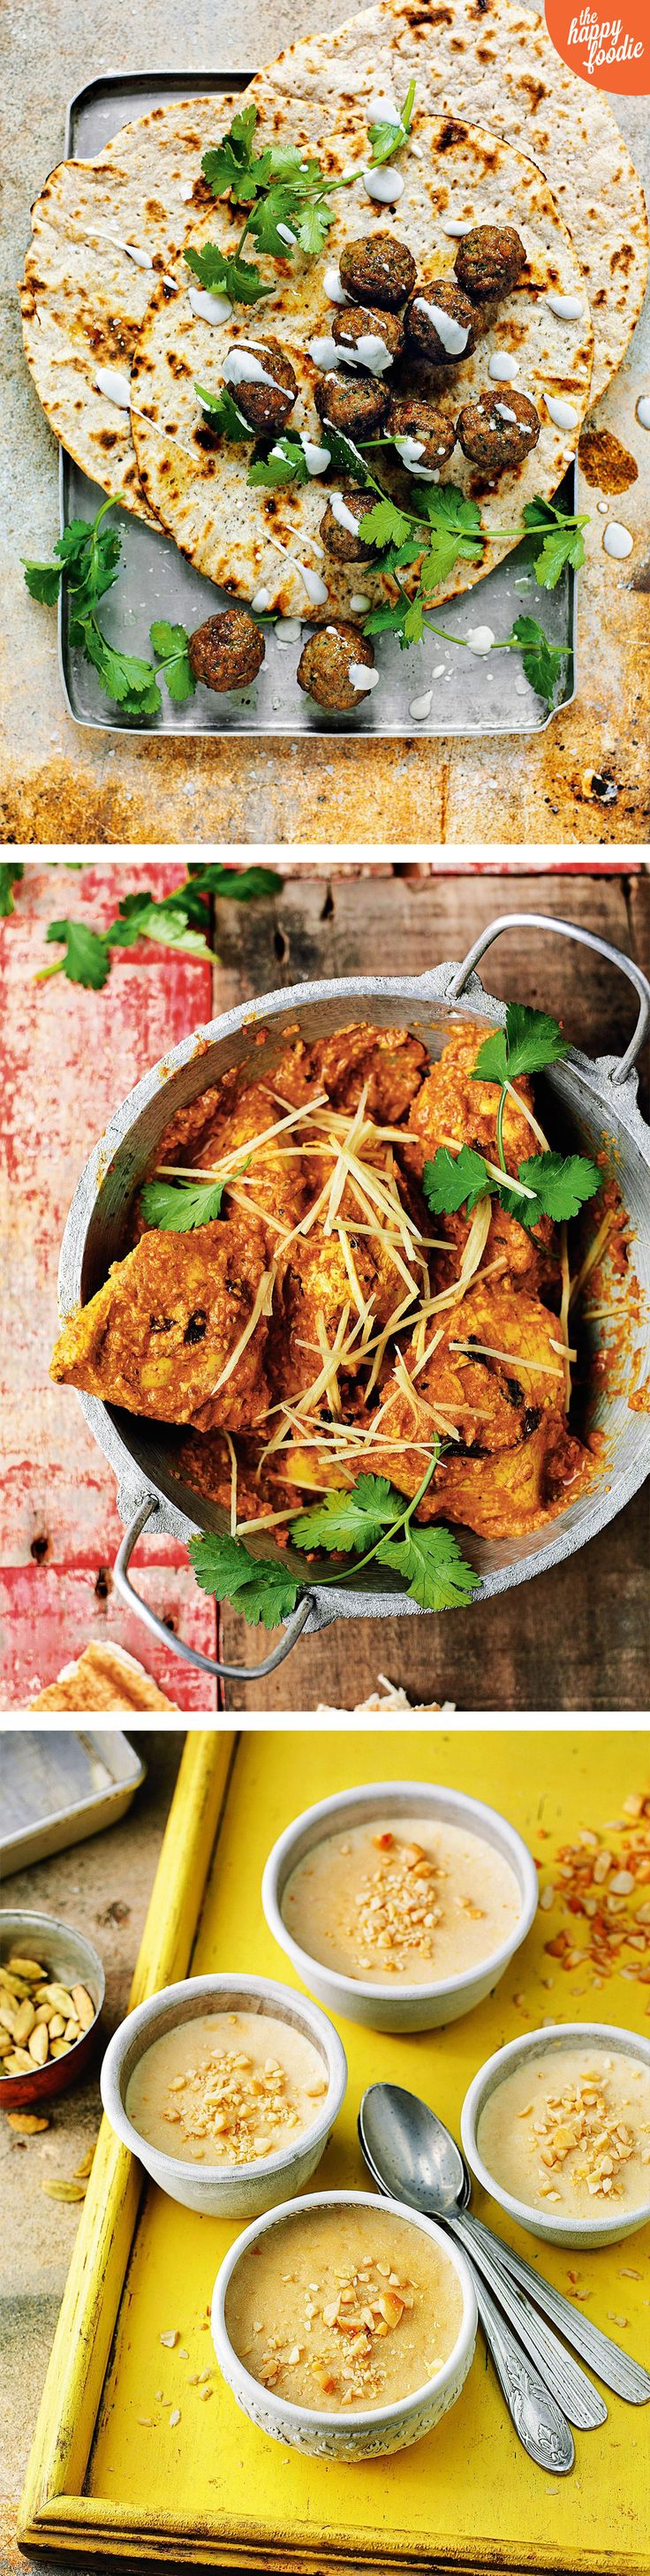 Treat your dad this Father's Day with the perfect weekend meal  – a sumptuous, authentic three-course Indian feast from Rick Stein's India! It looks and tastes stunning, but is deceptively simple to make.